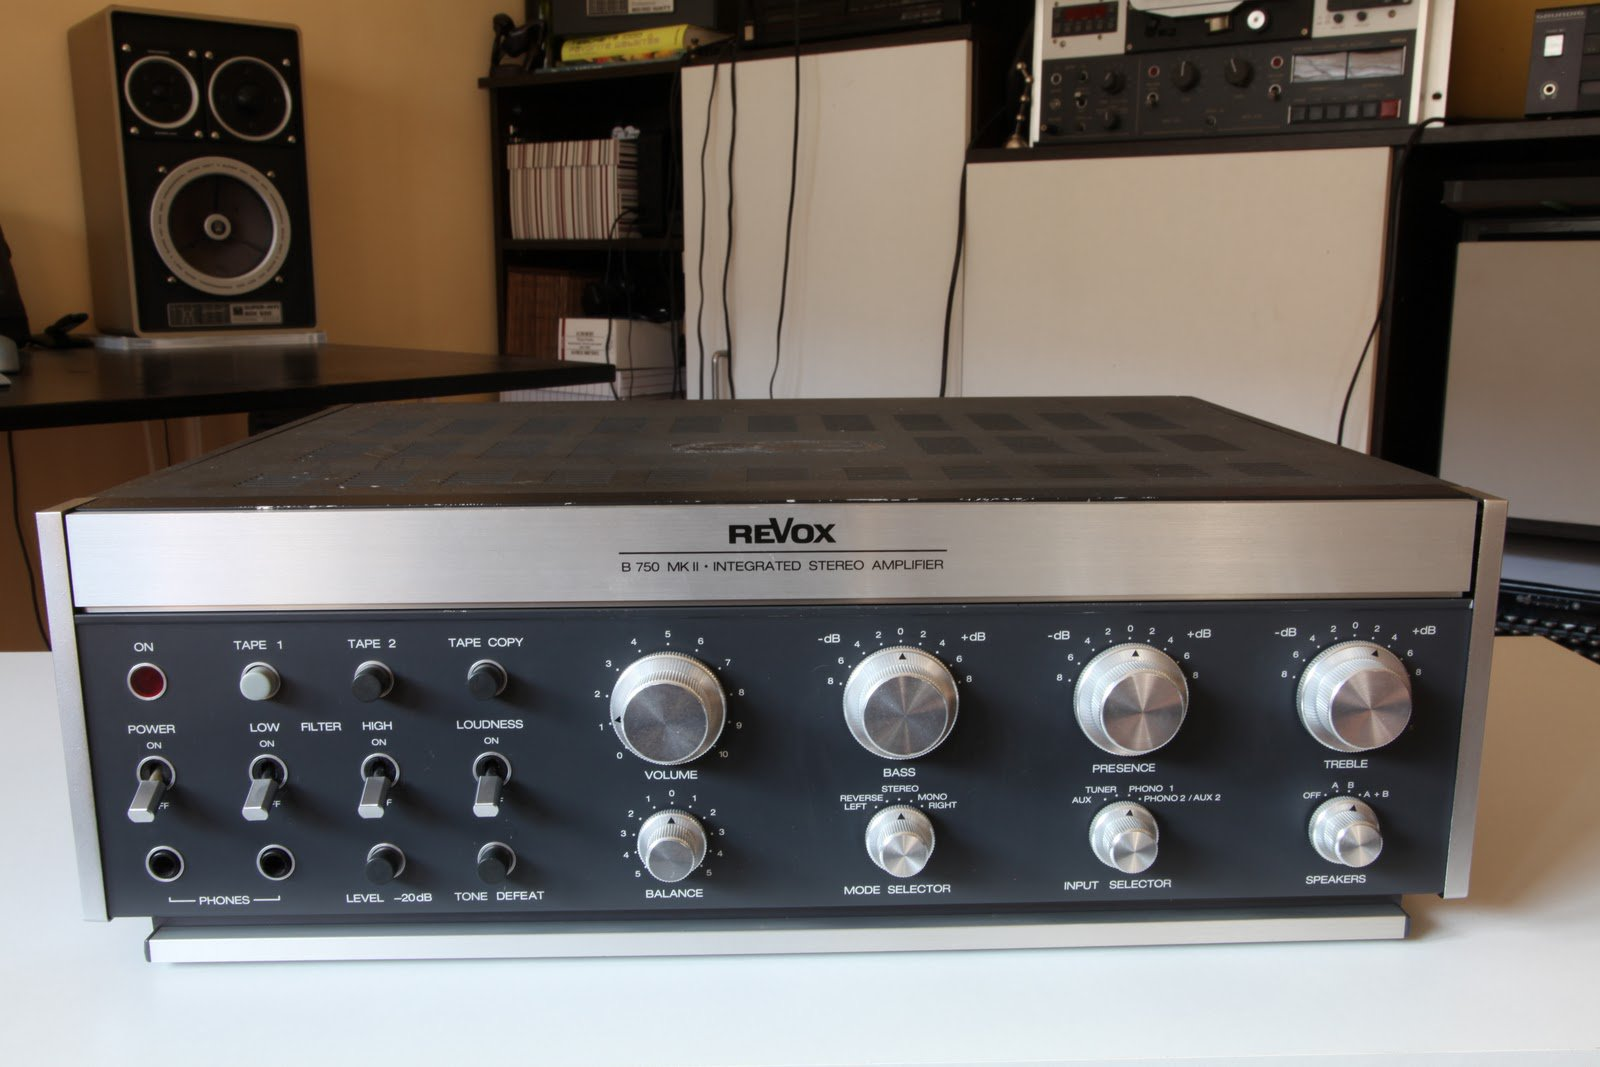 FOR SALE: FOR SALE: Vintage Revox B750 MK2 integrated Stereo Amp Collector's item